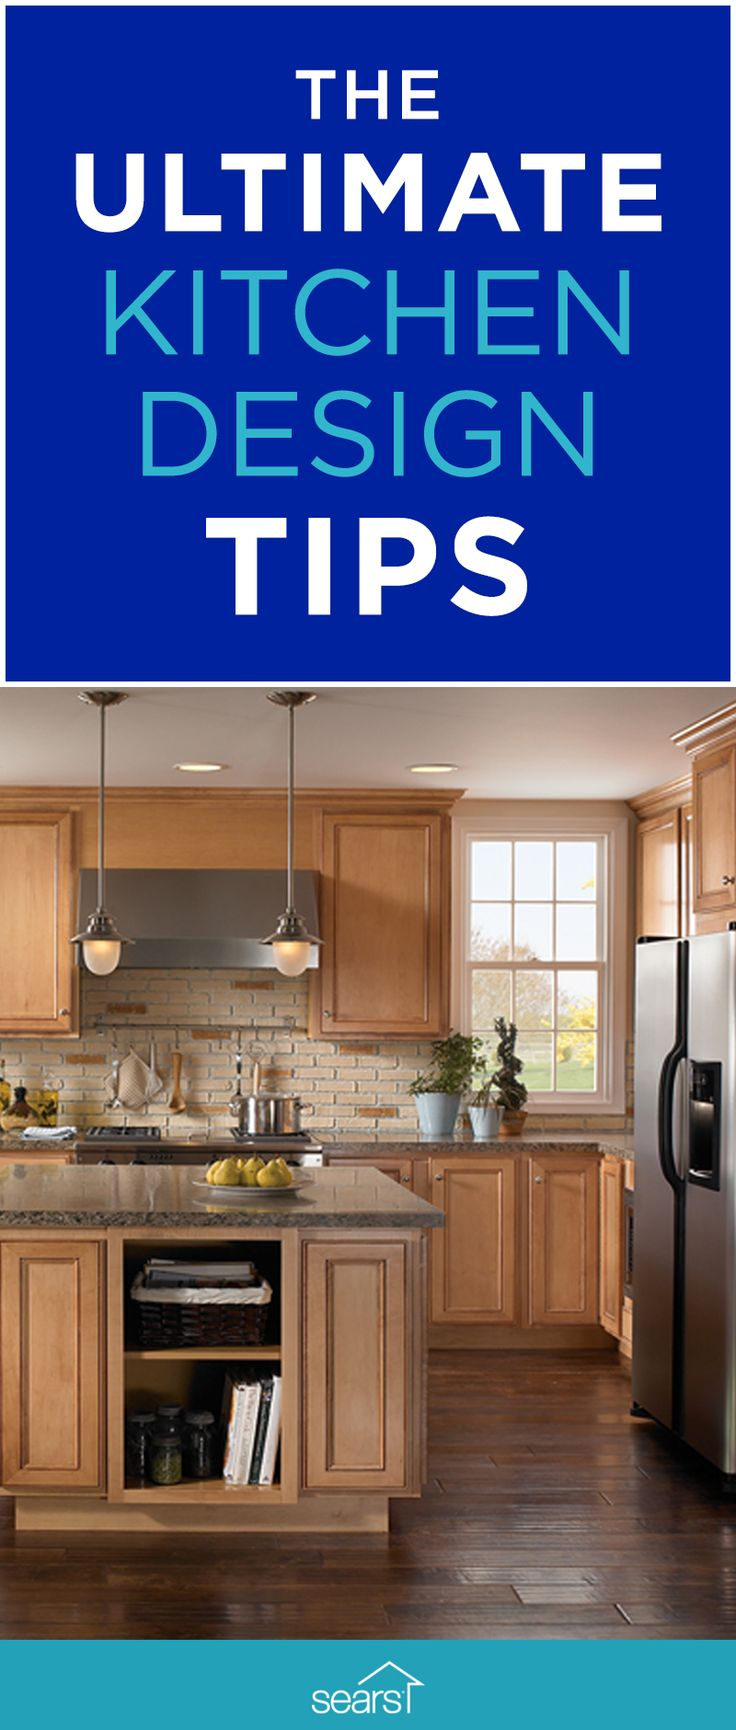 very attractive kitchen design certification. The ULTIMATE kitchen design tips  Are you redesigning your Here are a few things to keep in mind as decide what new space is going look 20 best Kitchen Remodel Renovation Design images on Pinterest